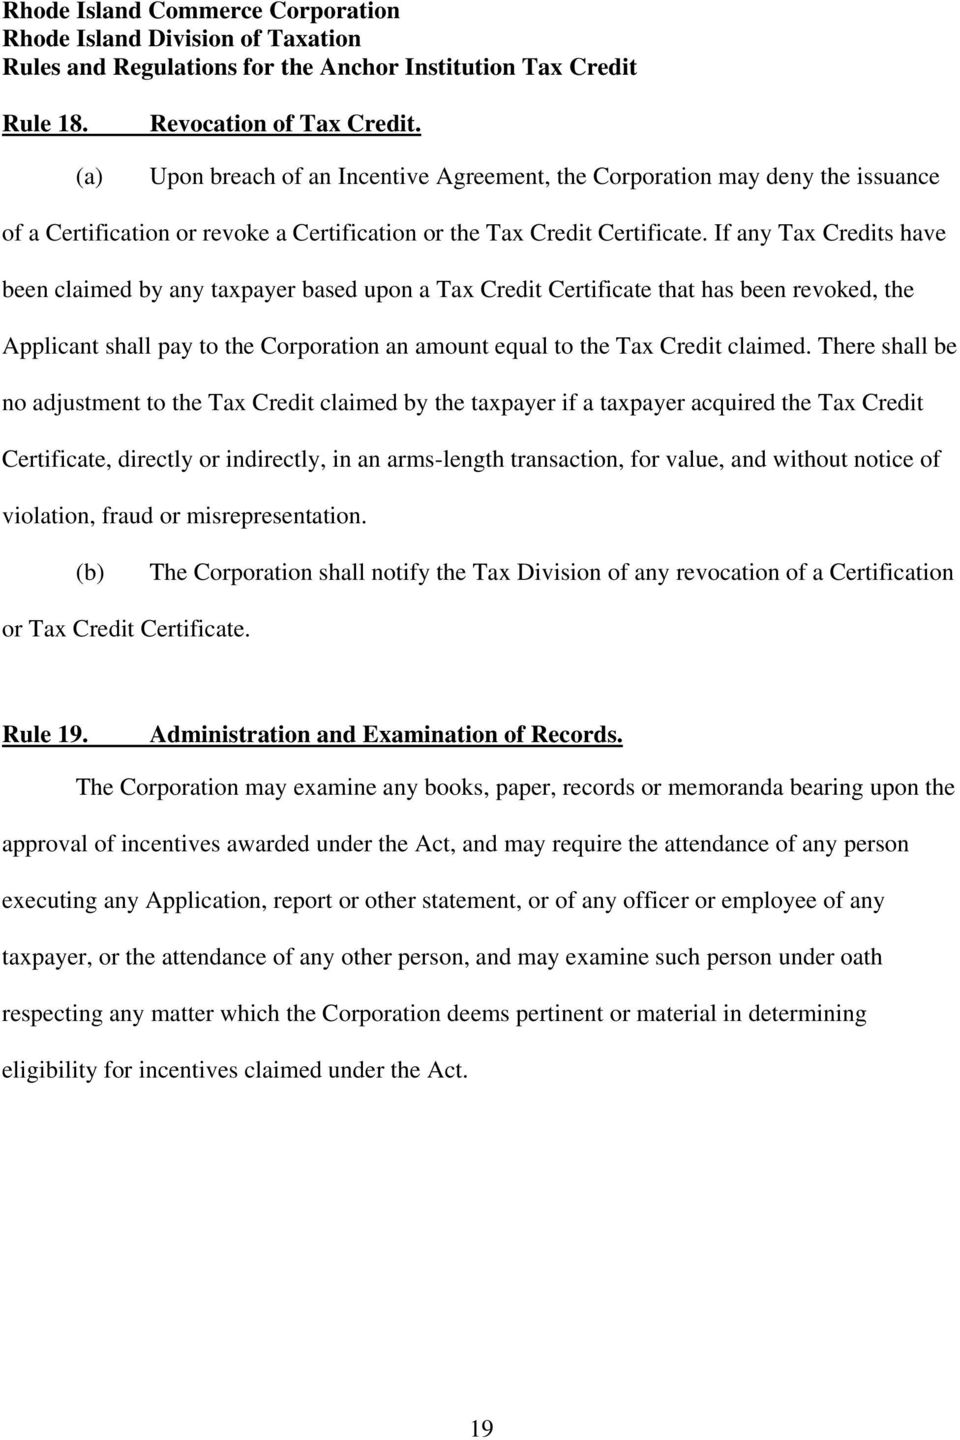 There shall be no adjustment to the Tax Credit claimed by the taxpayer if a taxpayer acquired the Tax Credit Certificate, directly or indirectly, in an arms-length transaction, for value, and without